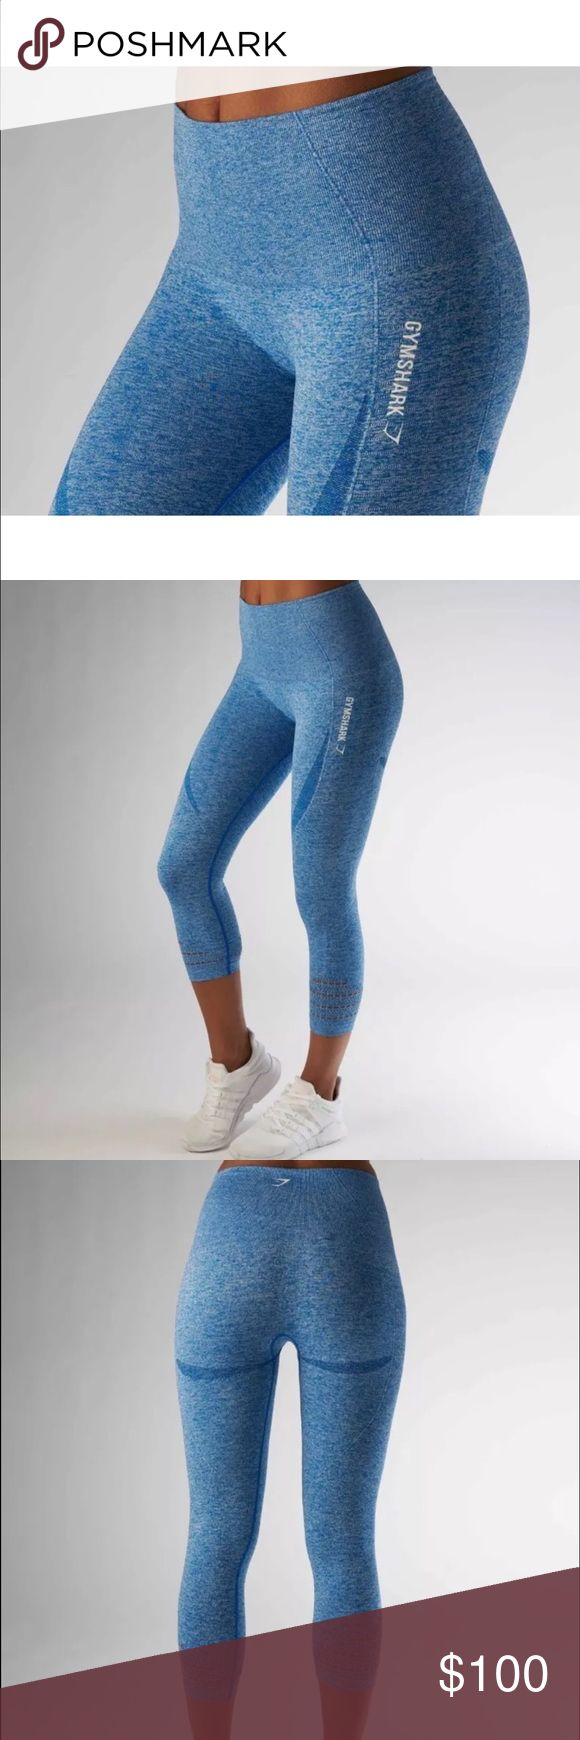 GymShark Seamless Leggings Medium Blueberry NWT Brand new with tags. Ready to ship. Please comment before purchased, as these are cross-listed. gymshark Pants Leggings